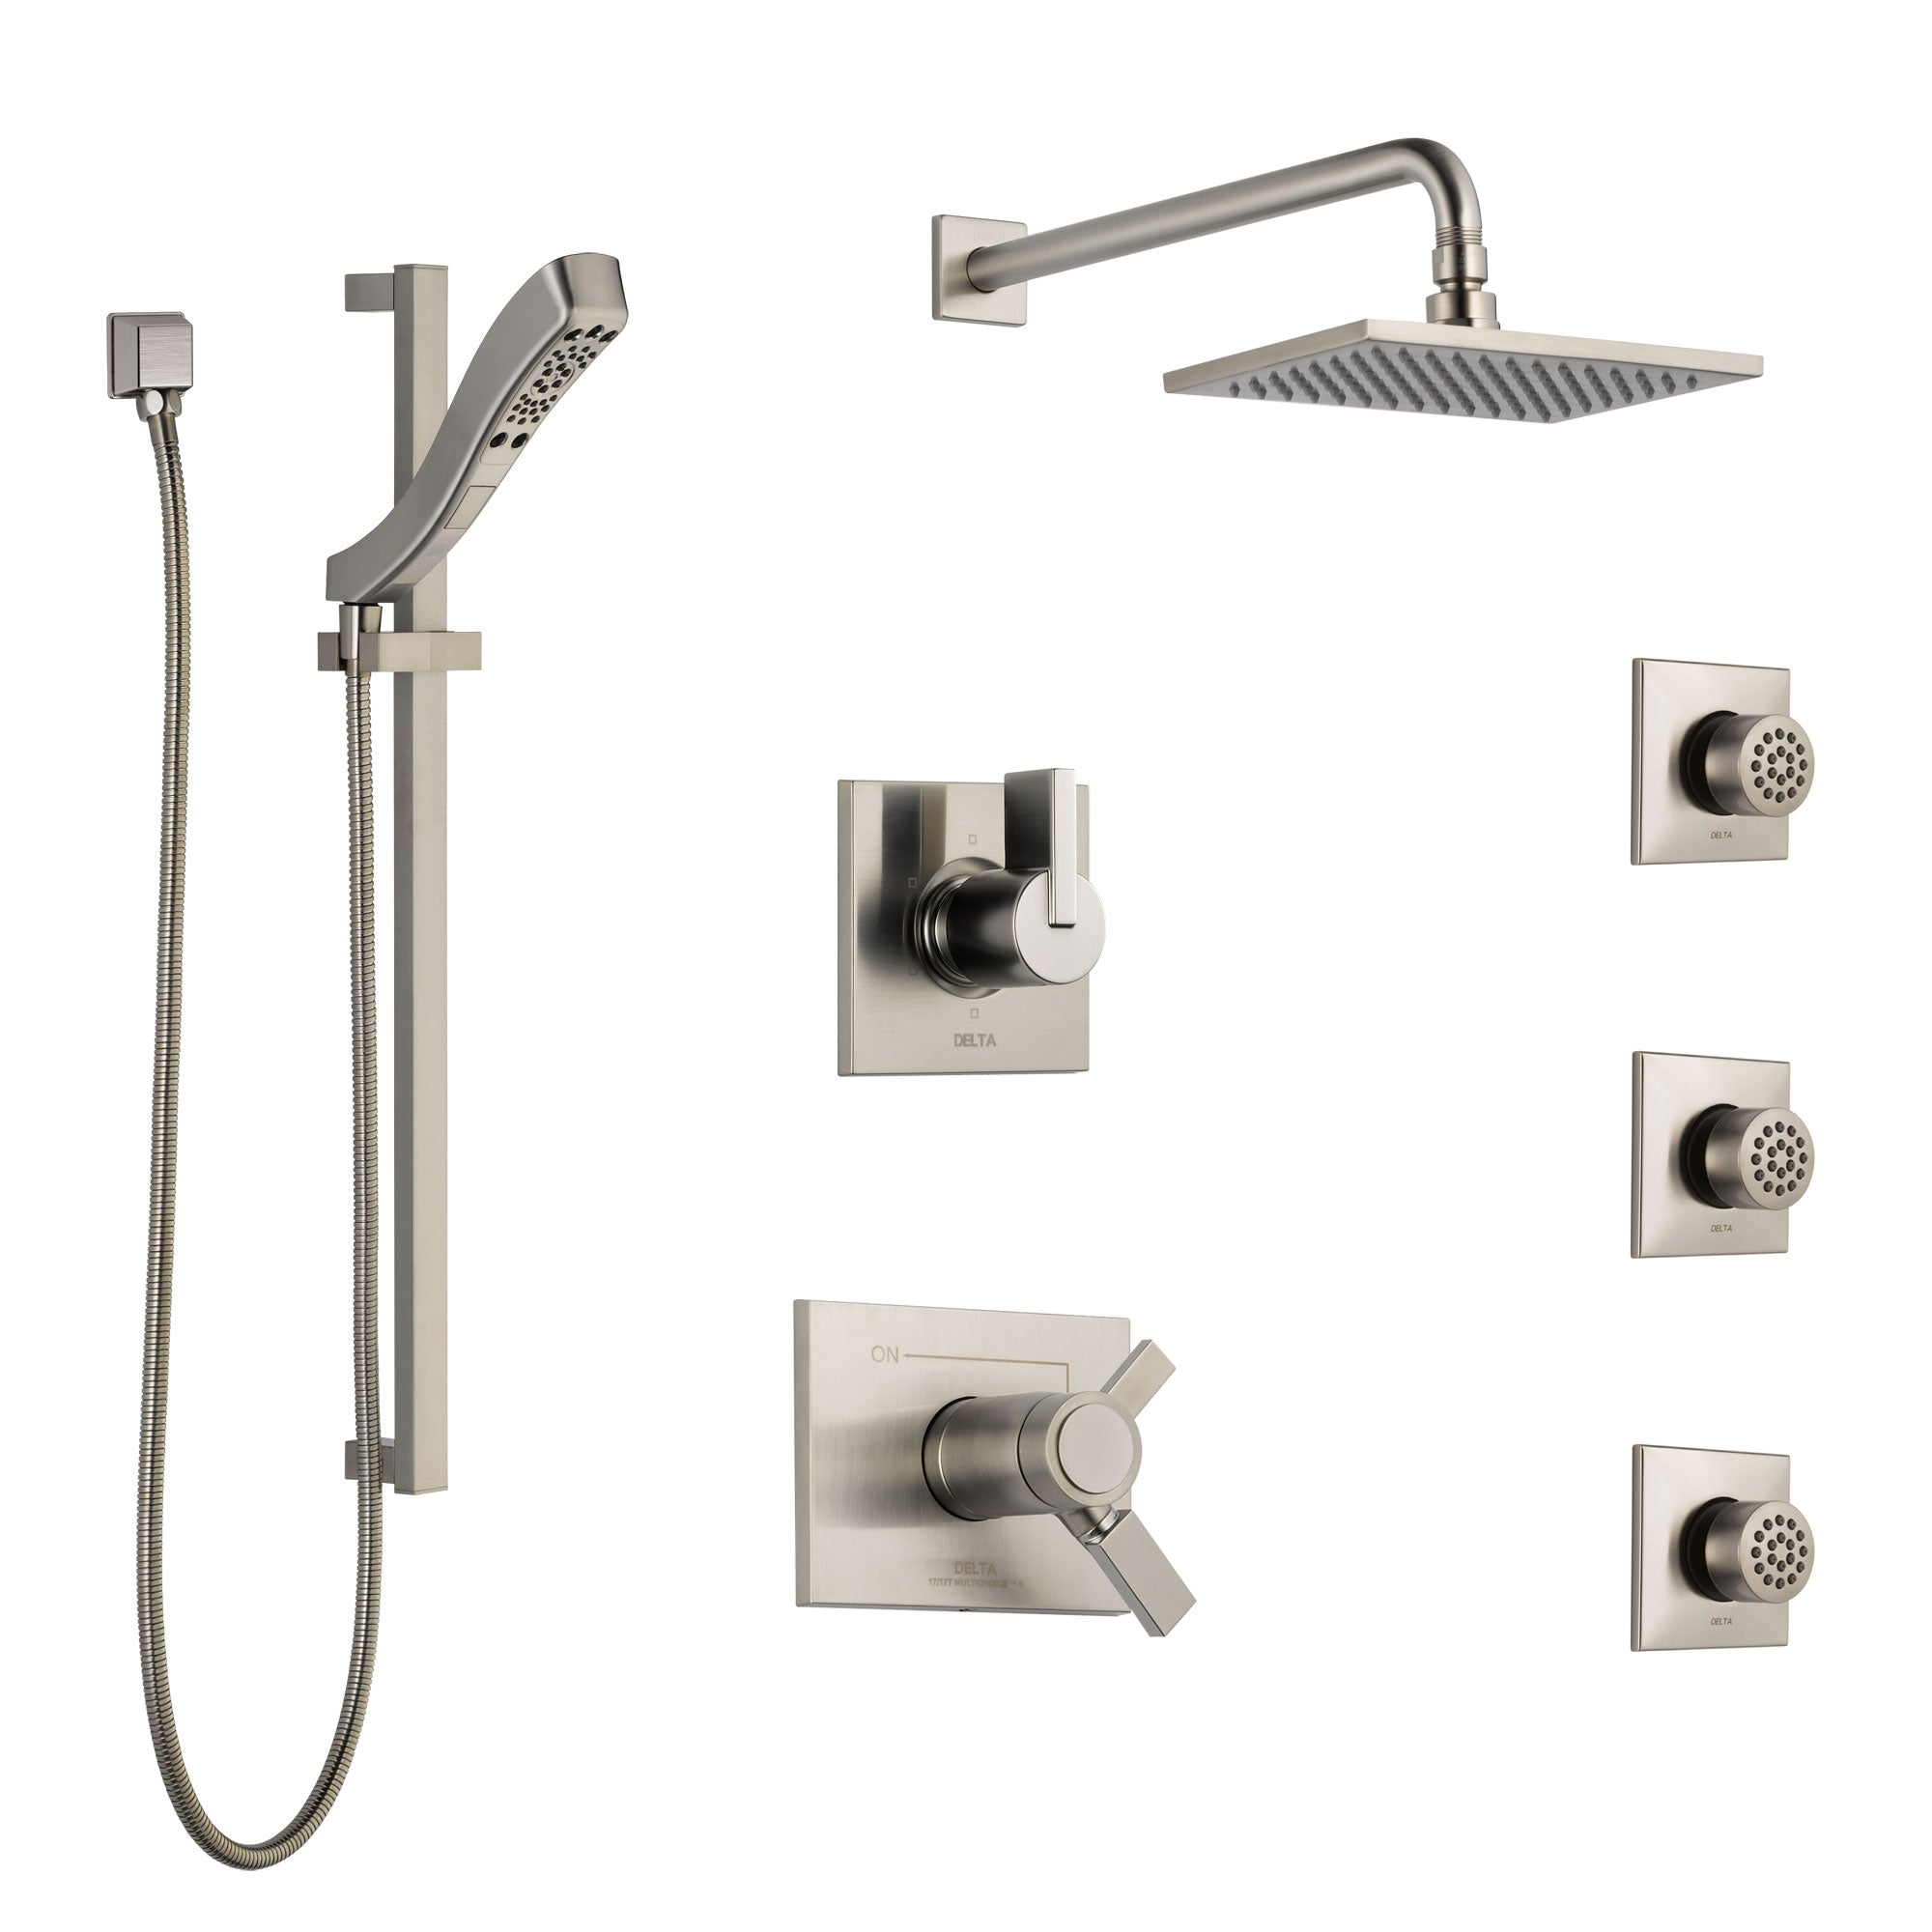 Delta Vero Dual Thermostatic Control Stainless Steel Finish Shower System, 6-Setting Diverter, Showerhead, 3 Body Sprays, and Hand Shower SS17T2532SS6